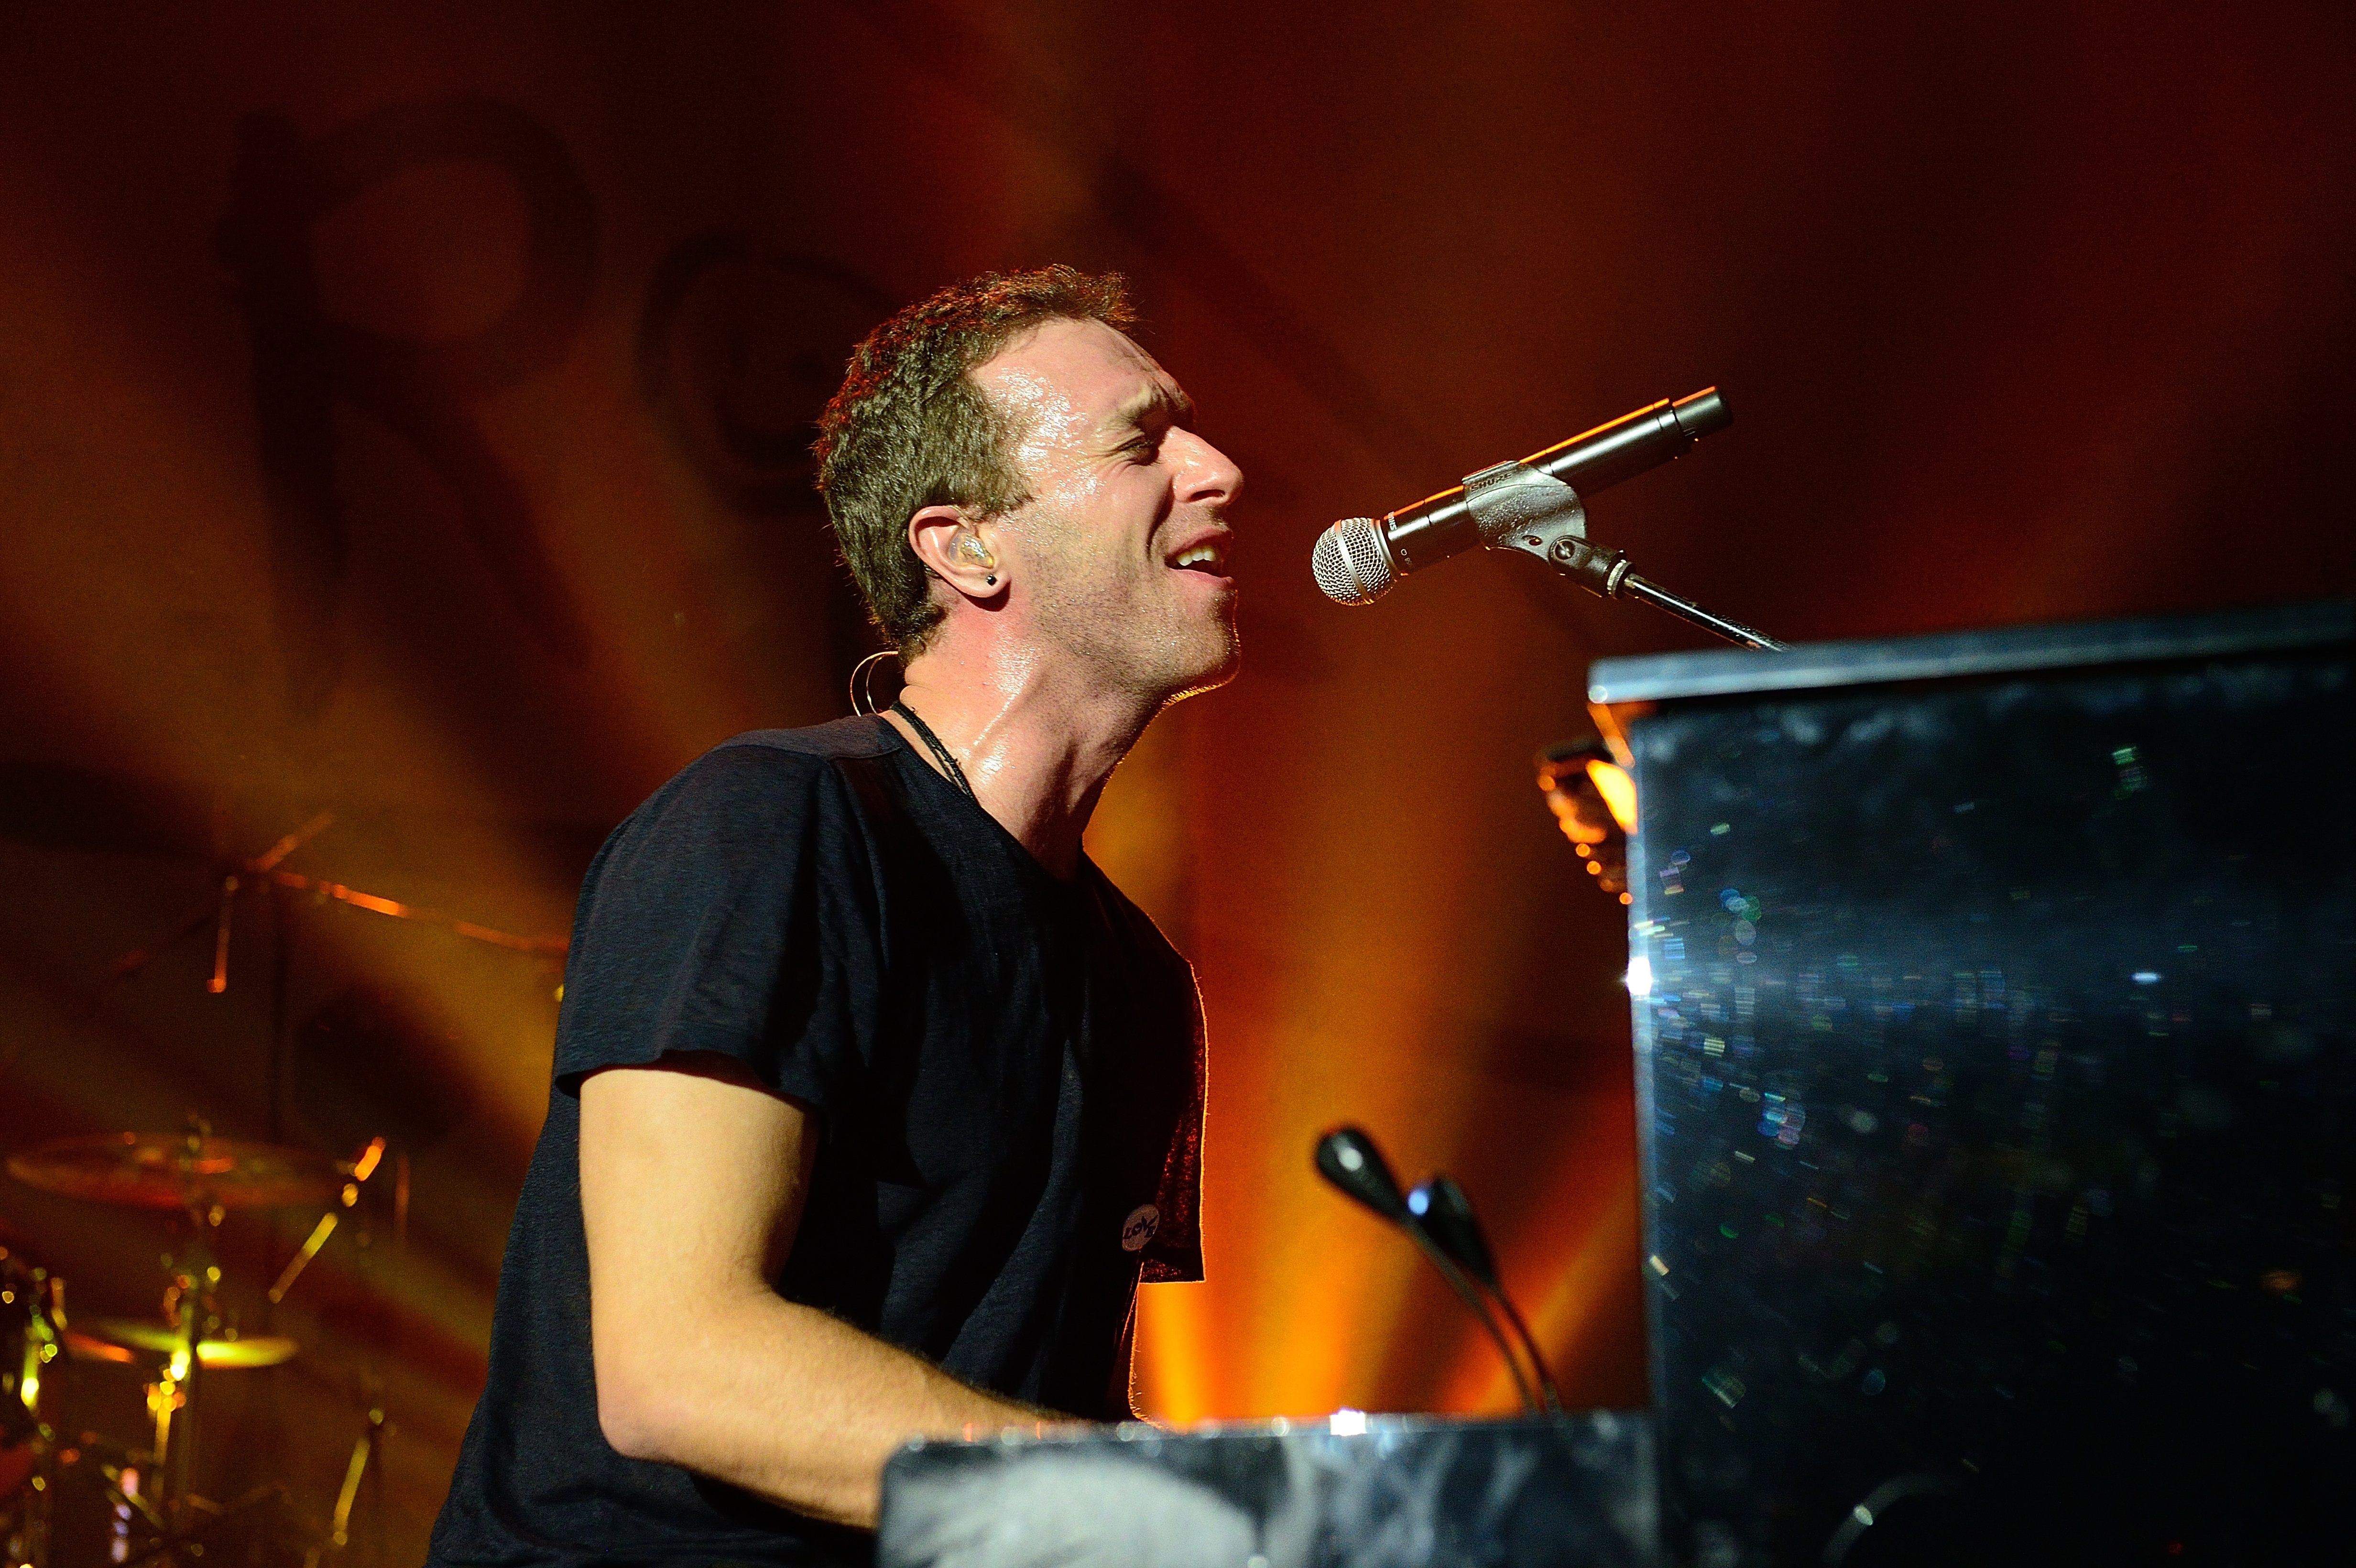 Chris Martin of Coldplay performs on stage at the 'Under 1 Roof' concert in aid of Kids Company at Hammersmith Apollo on December 19, 2013 in London, England.